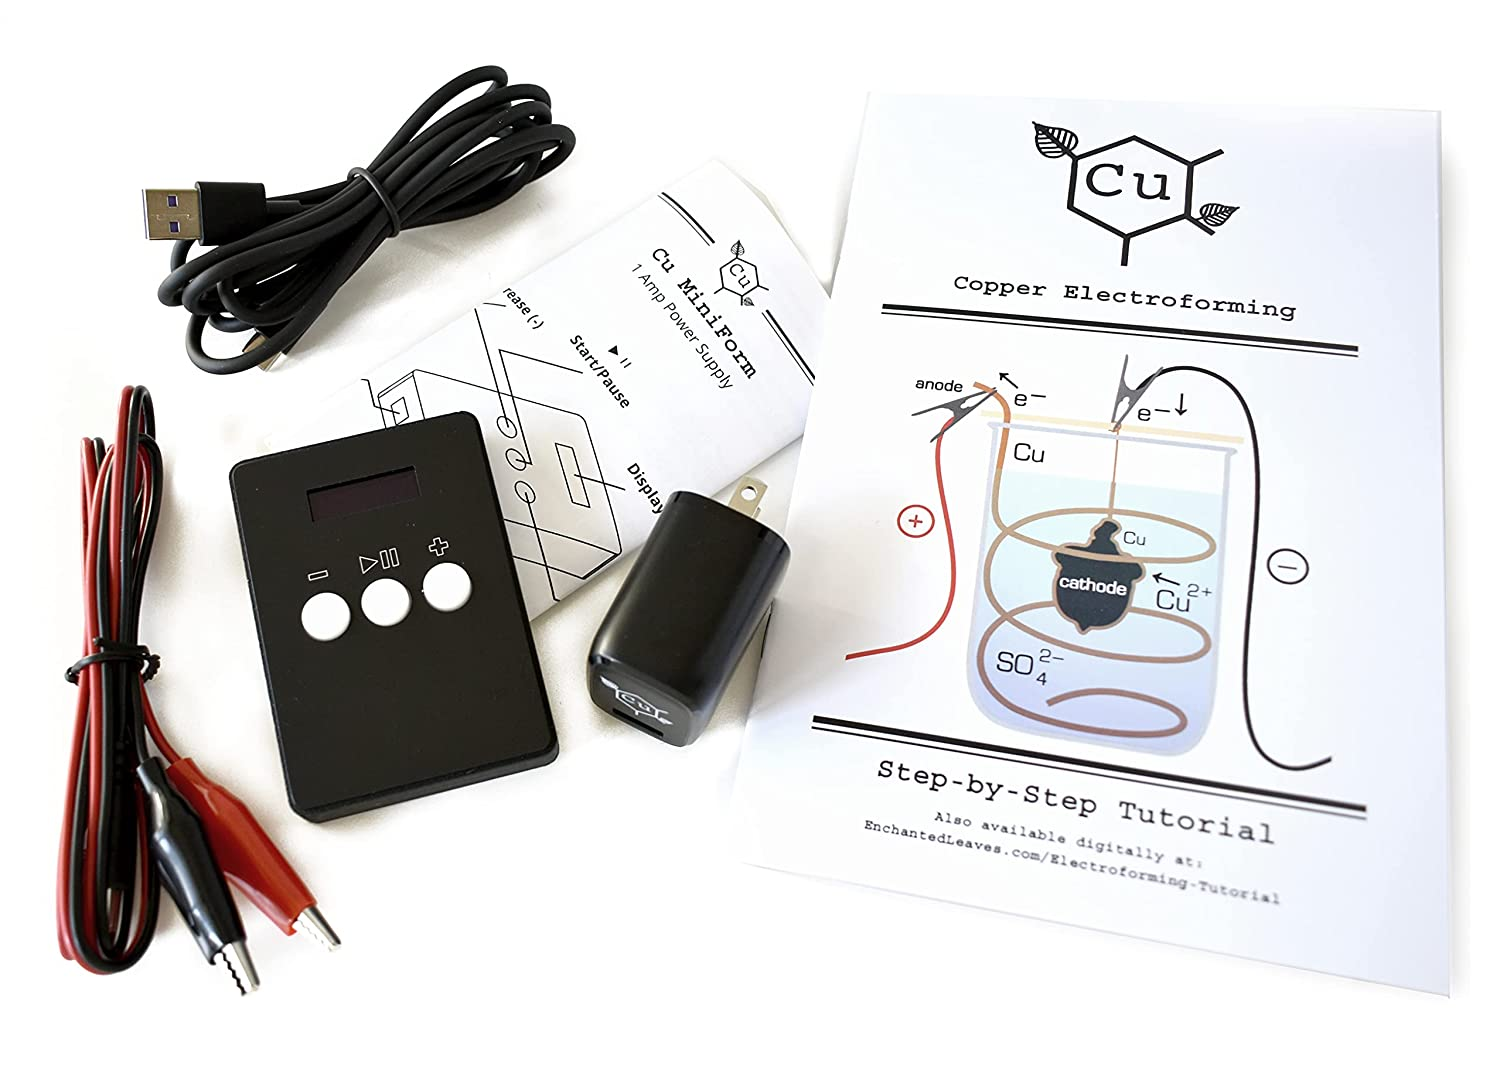 Cu MiniForm Power Supply for Electroforming | Small Electroformed Jewelry Rectifier | Learn How to Electroform Jewelry | Electroformer Guide